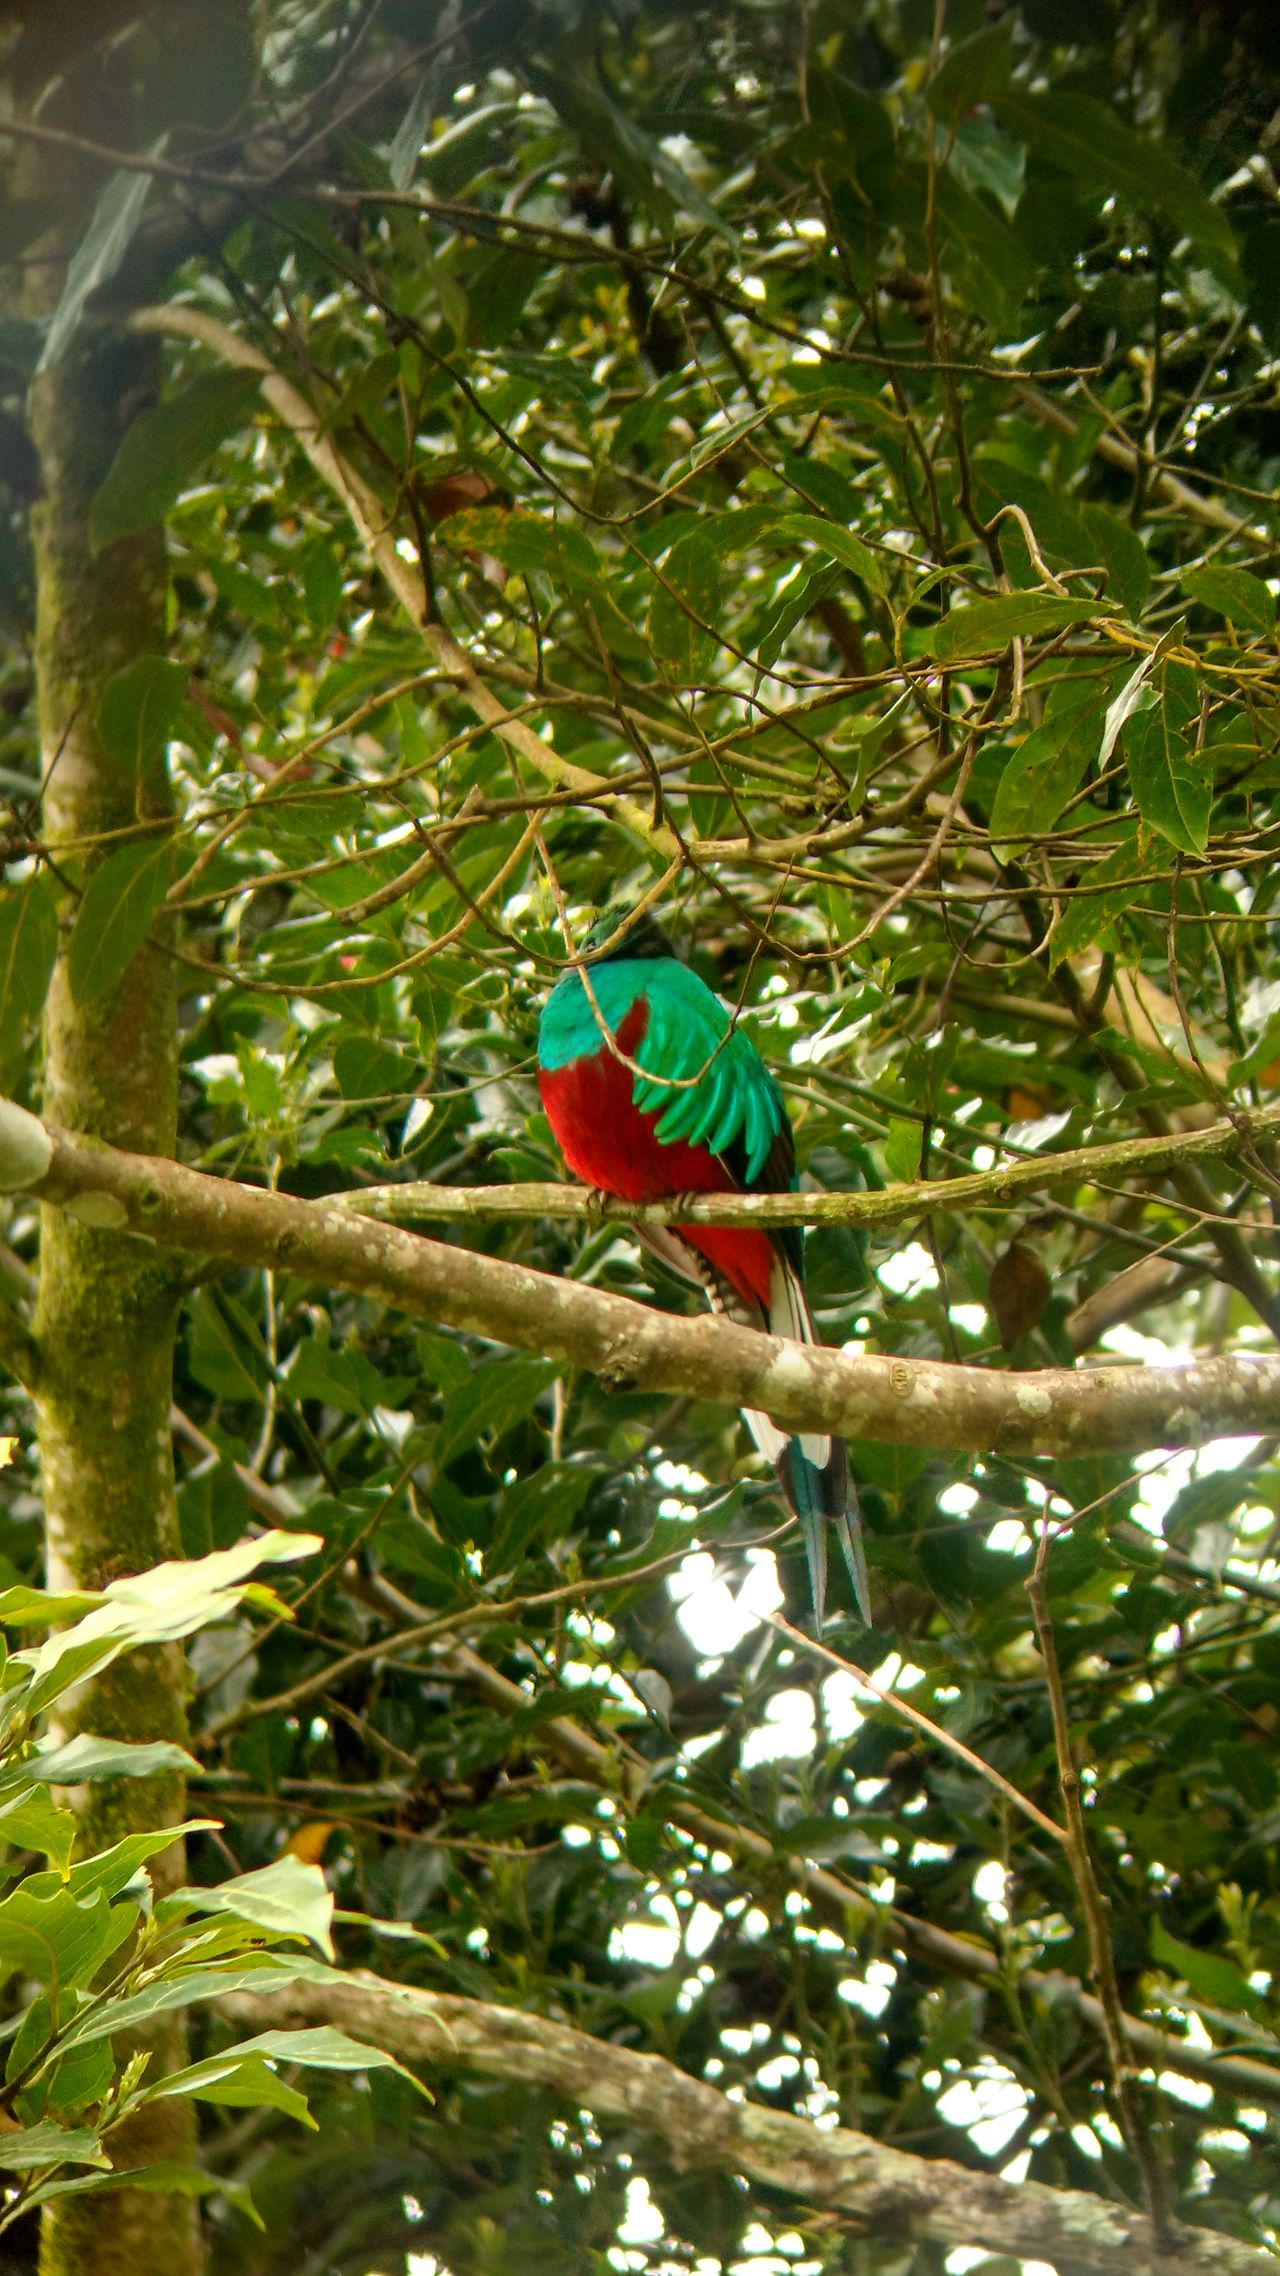 Quetzal Birds Of EyeEm  Bird Bird Photography Birds Birds_collection Birdwatching Bird Watching Nature Photography Nature Naturelovers Nature_collection Animals Animal Animal Photography Animal_collection